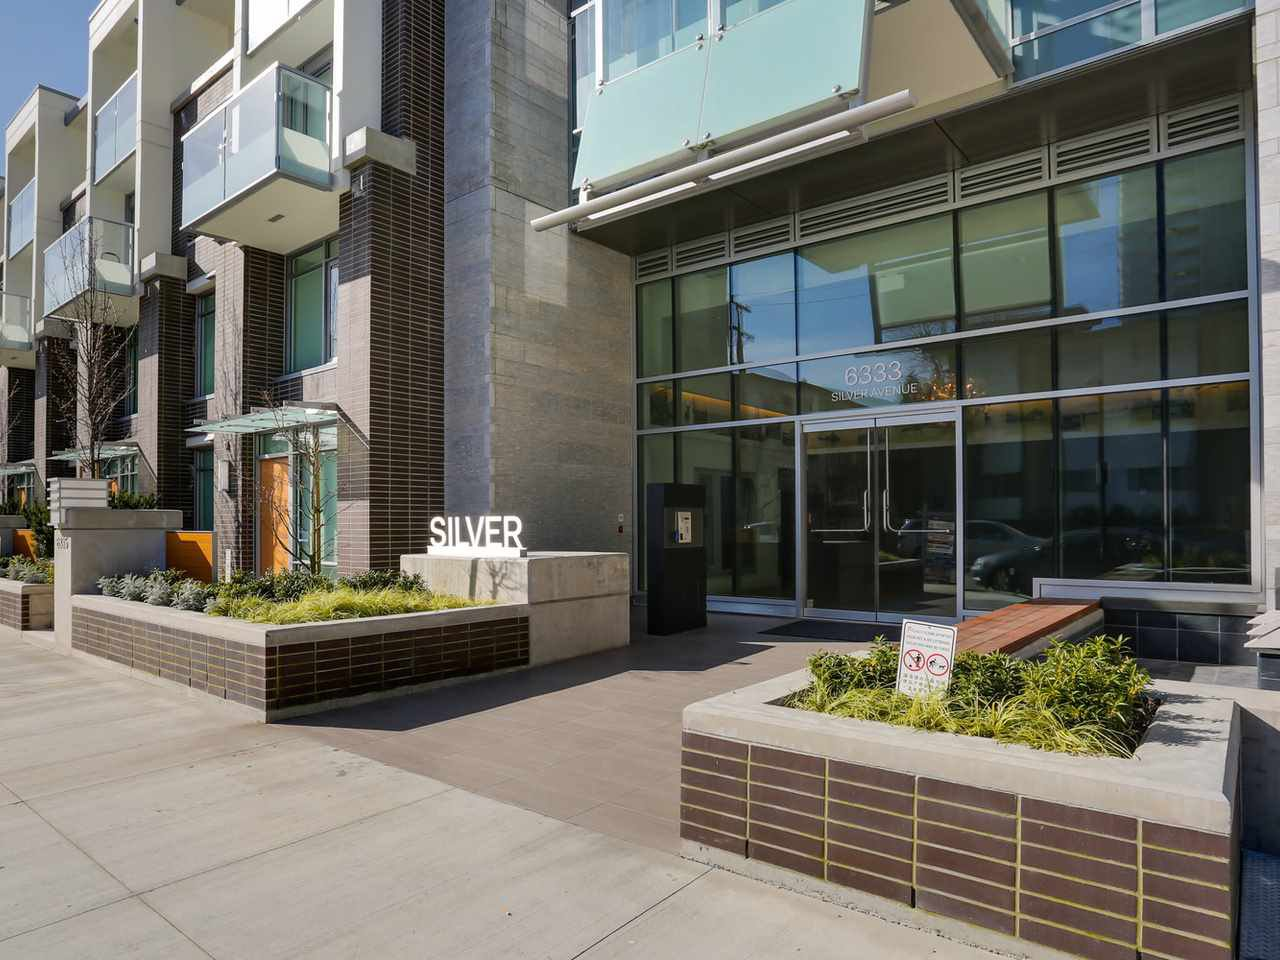 Main Photo: 3209 6333 SILVER Avenue in Burnaby: Metrotown Condo for sale (Burnaby South)  : MLS®# R2037515